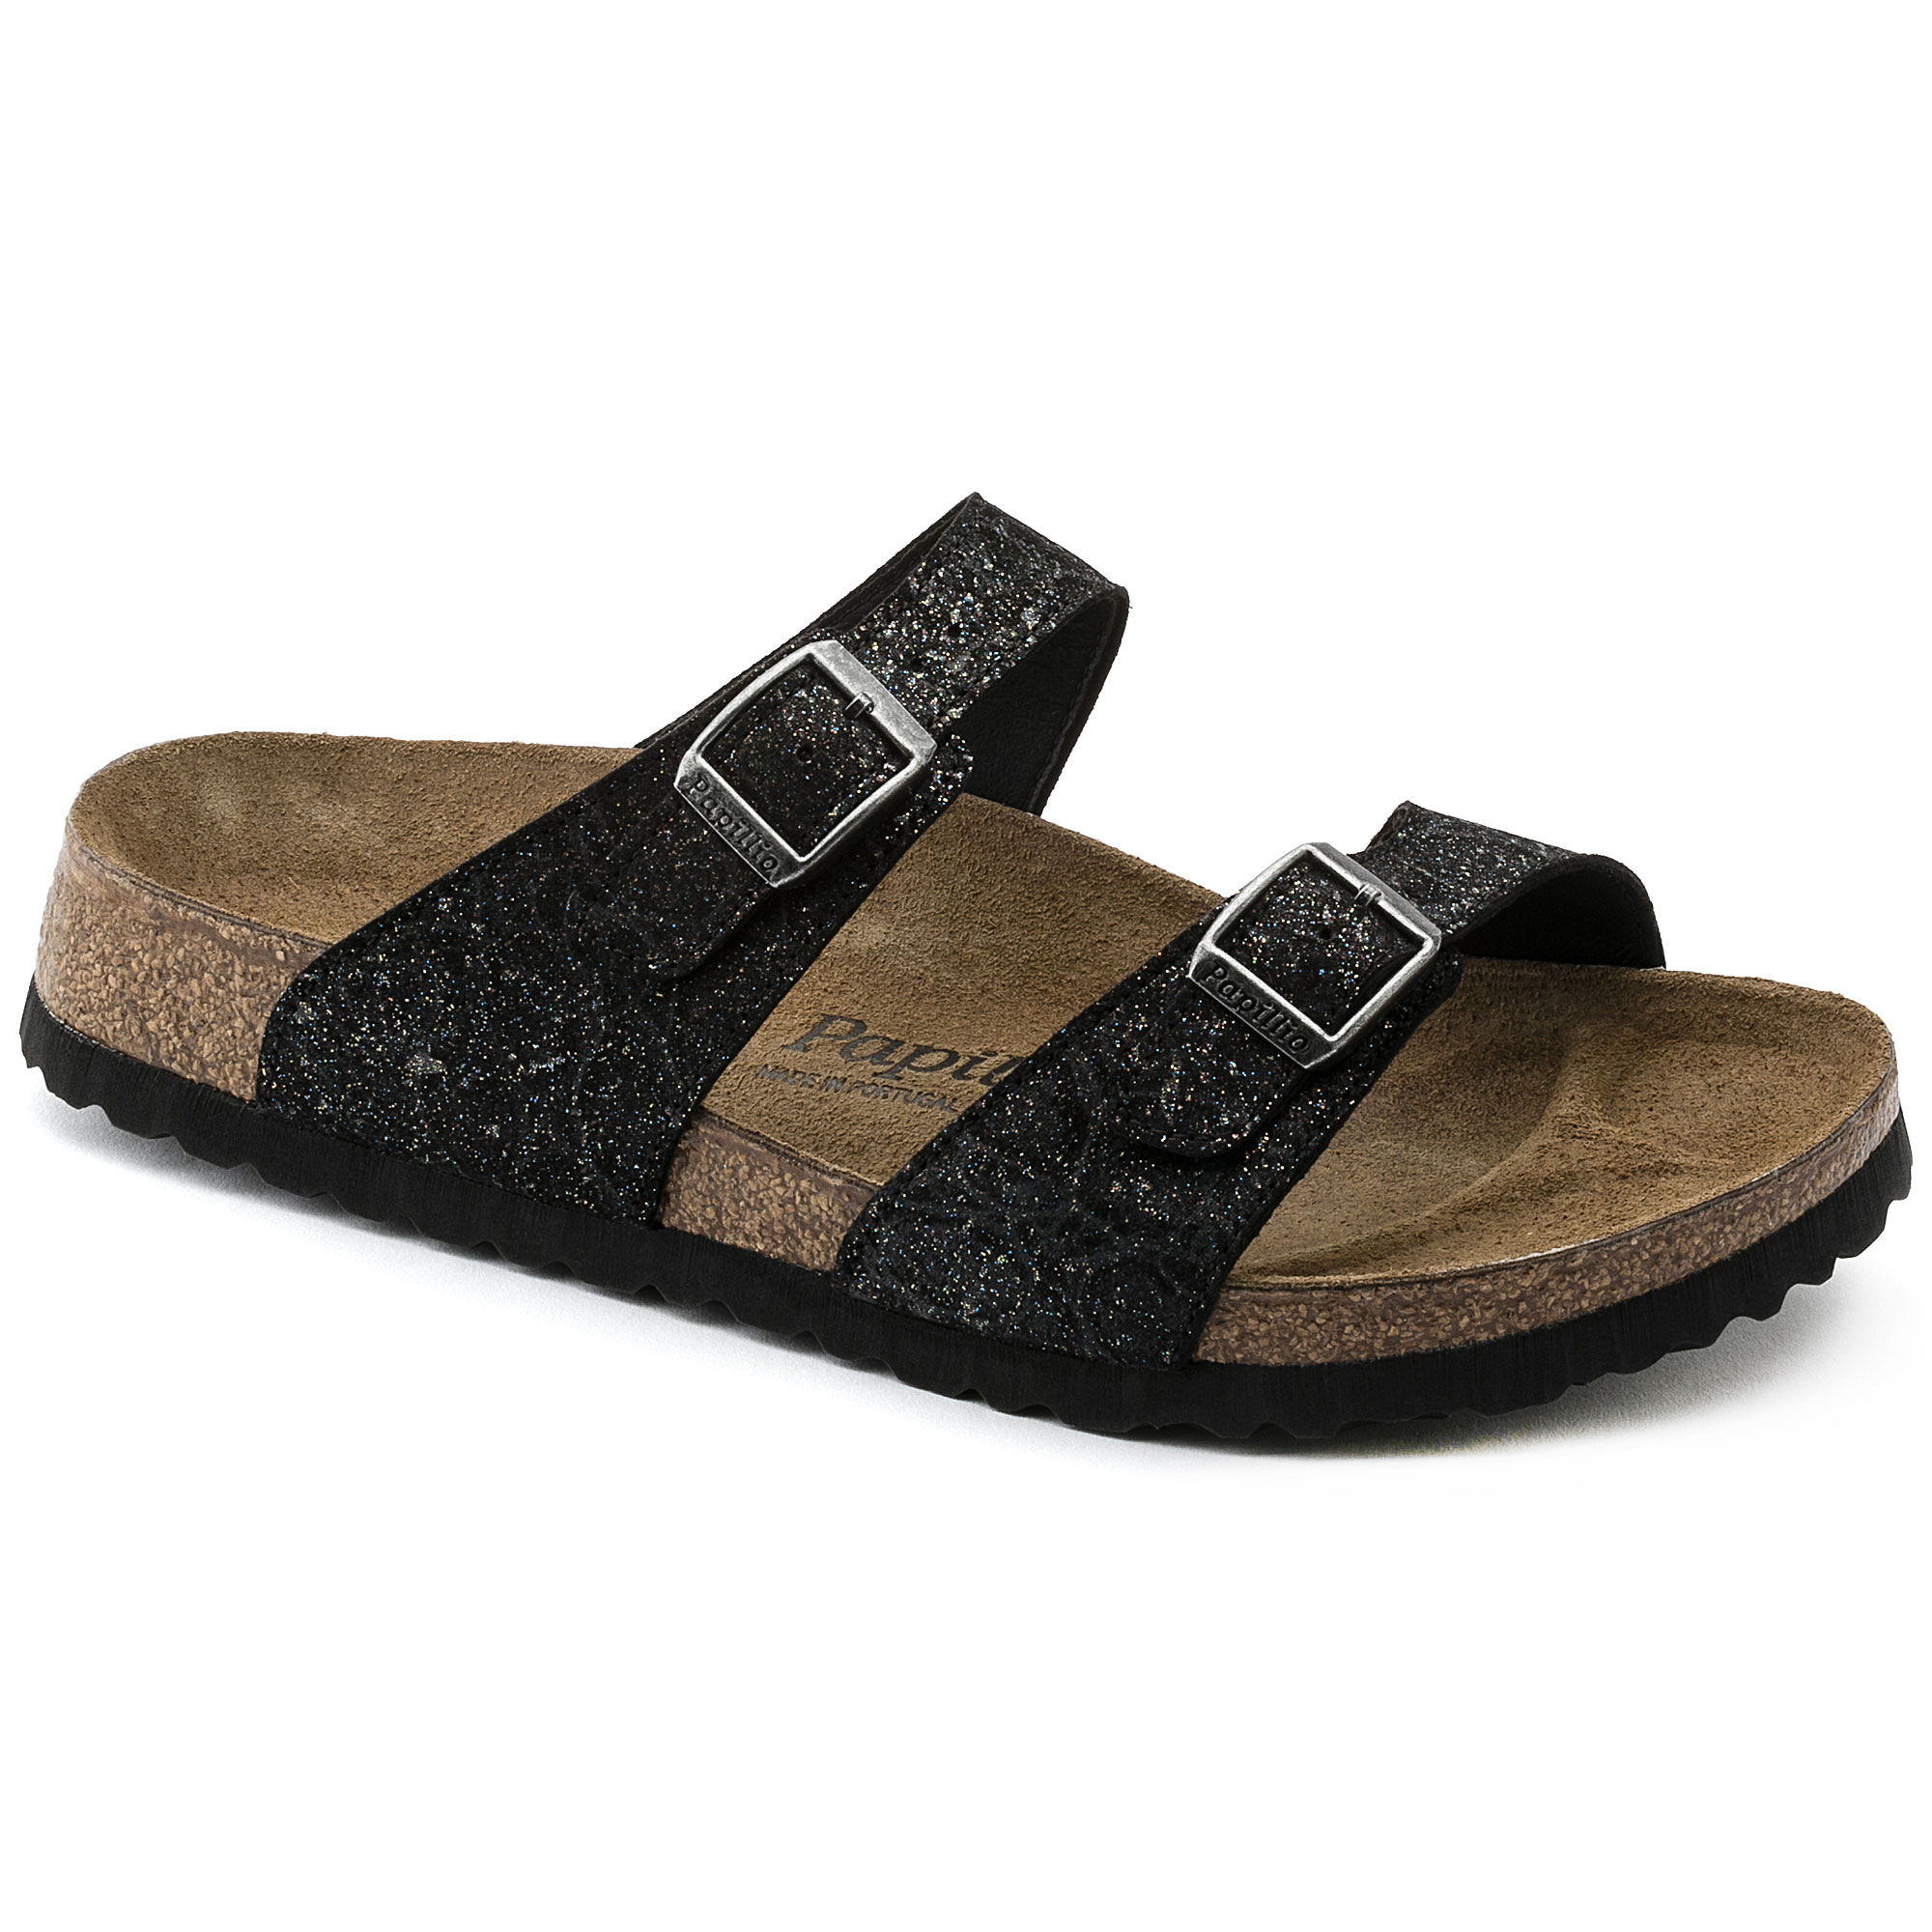 Download Black Glitter Birkenstocks JPG